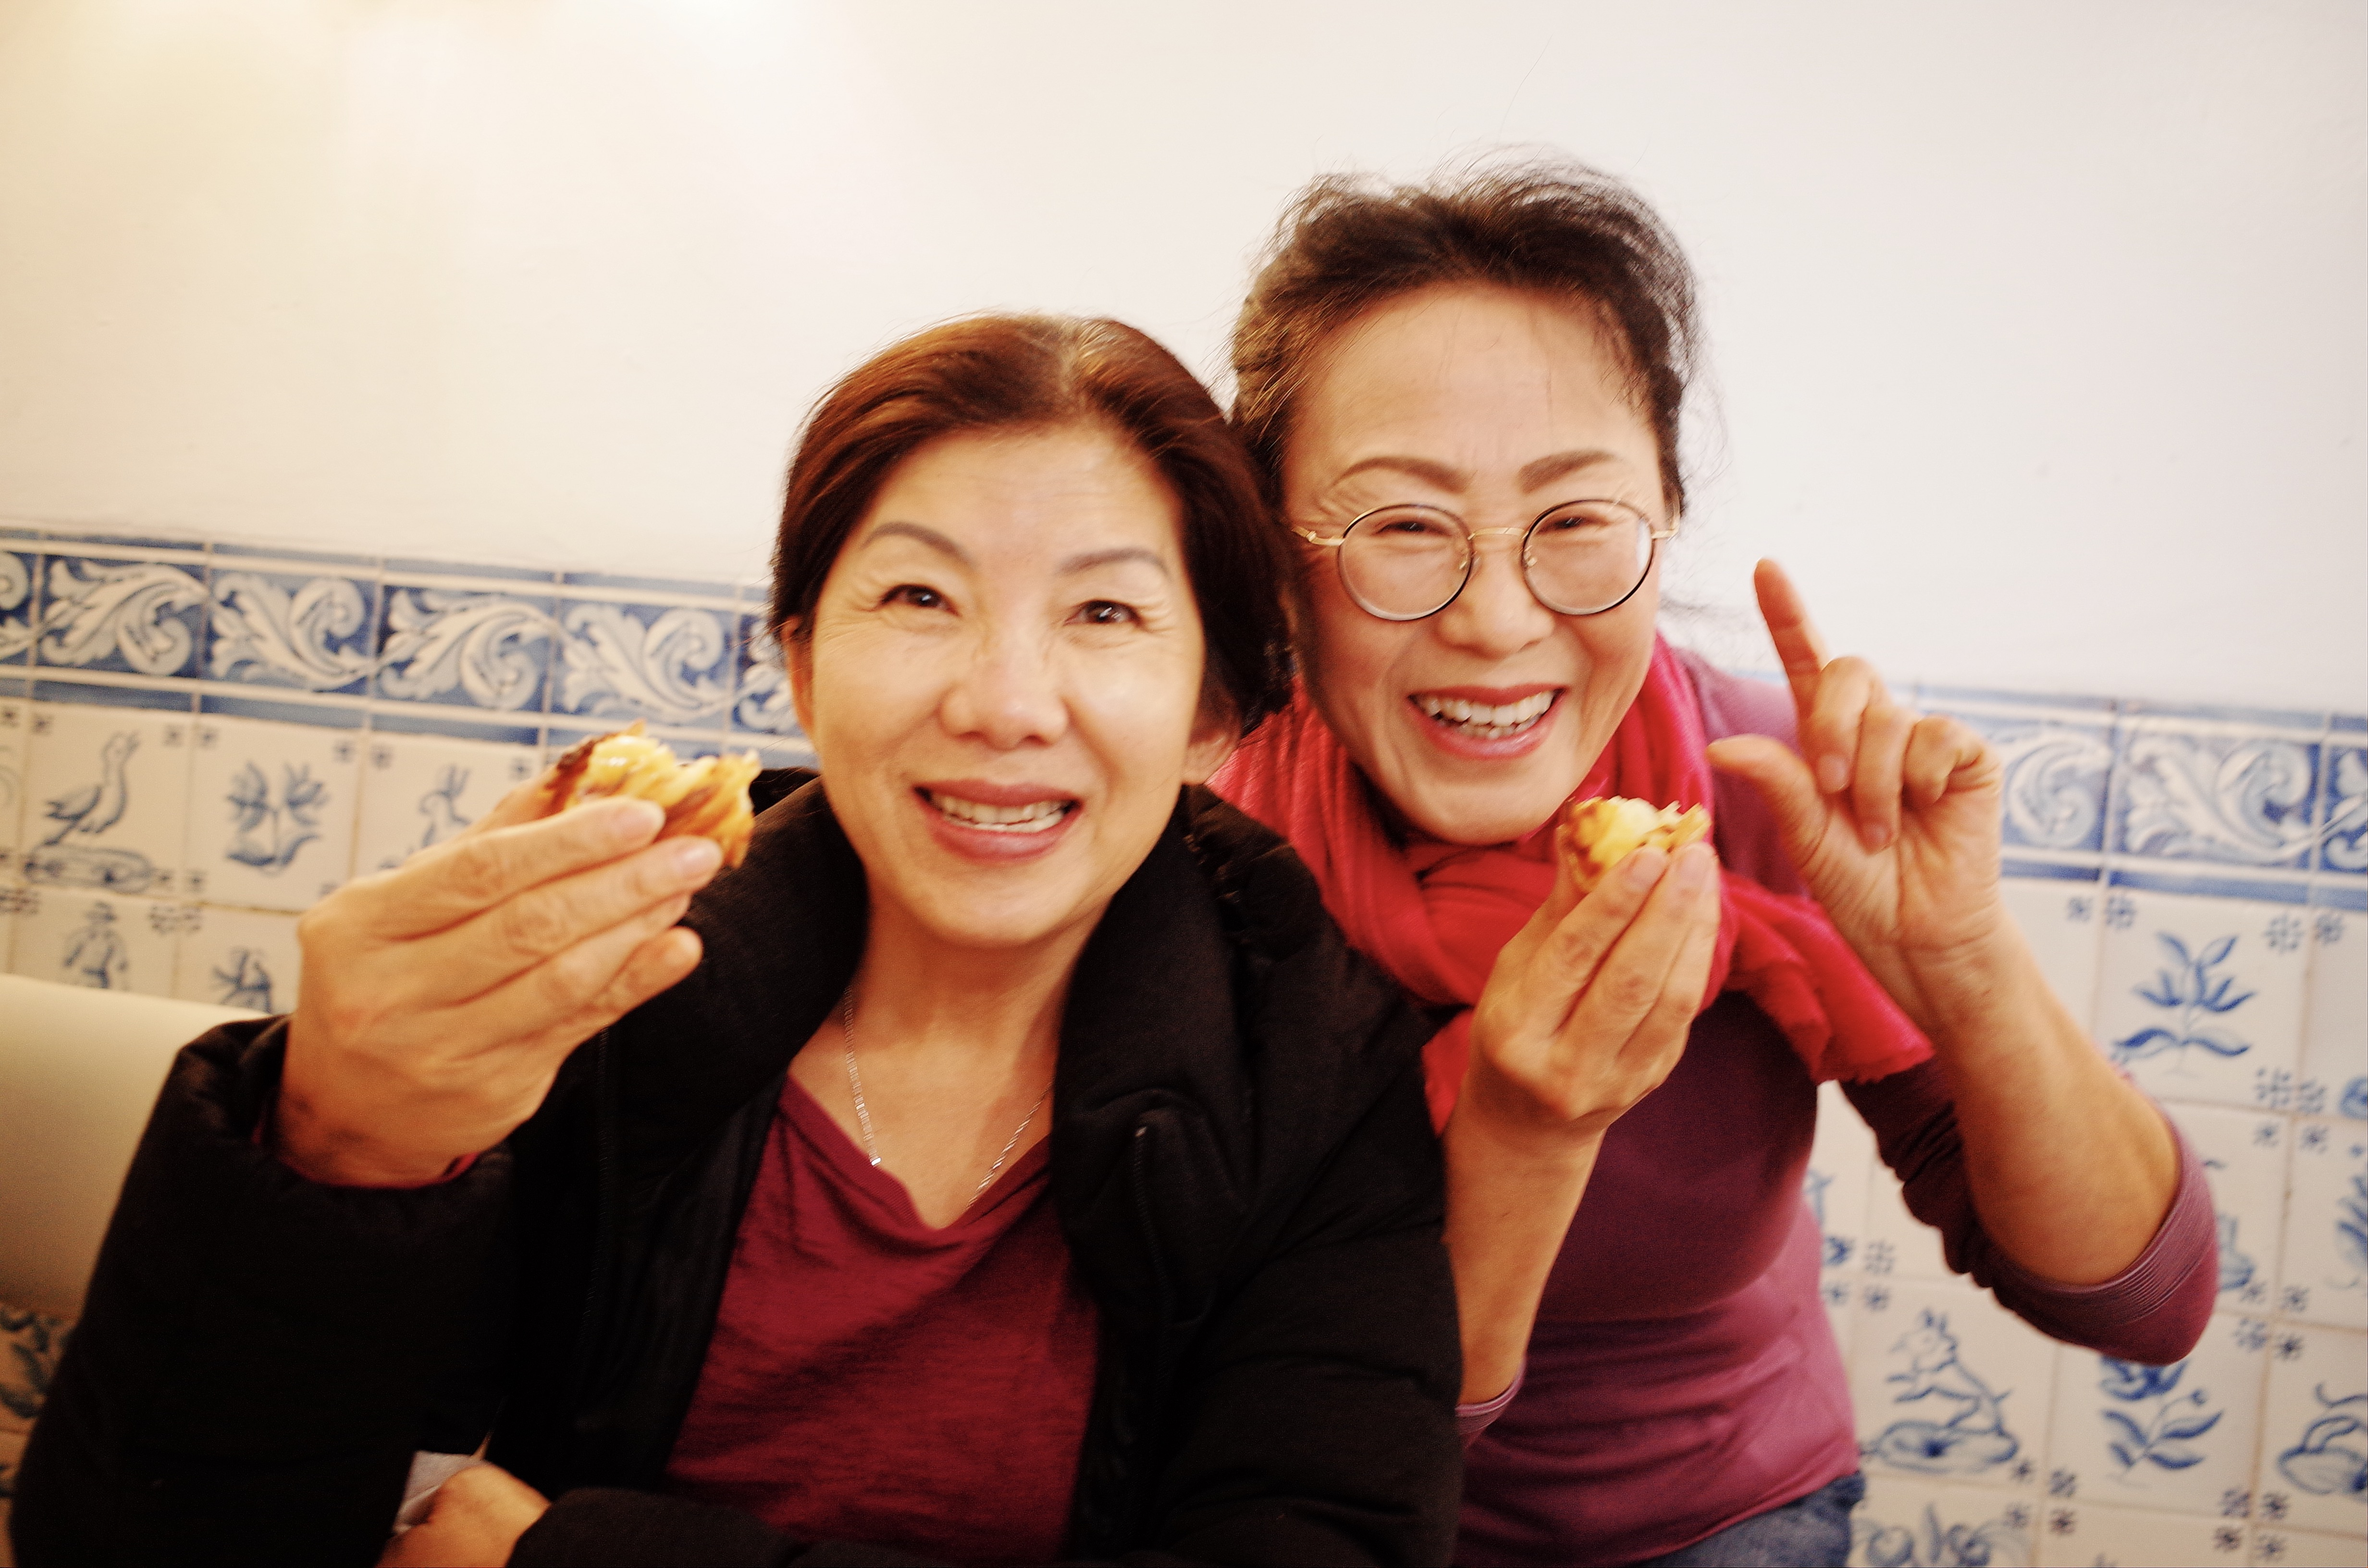 Cindy's mom and my mom, enjoying Portuguese Egg Tarts in Lisbon, a photo that puts a smile on my face :)